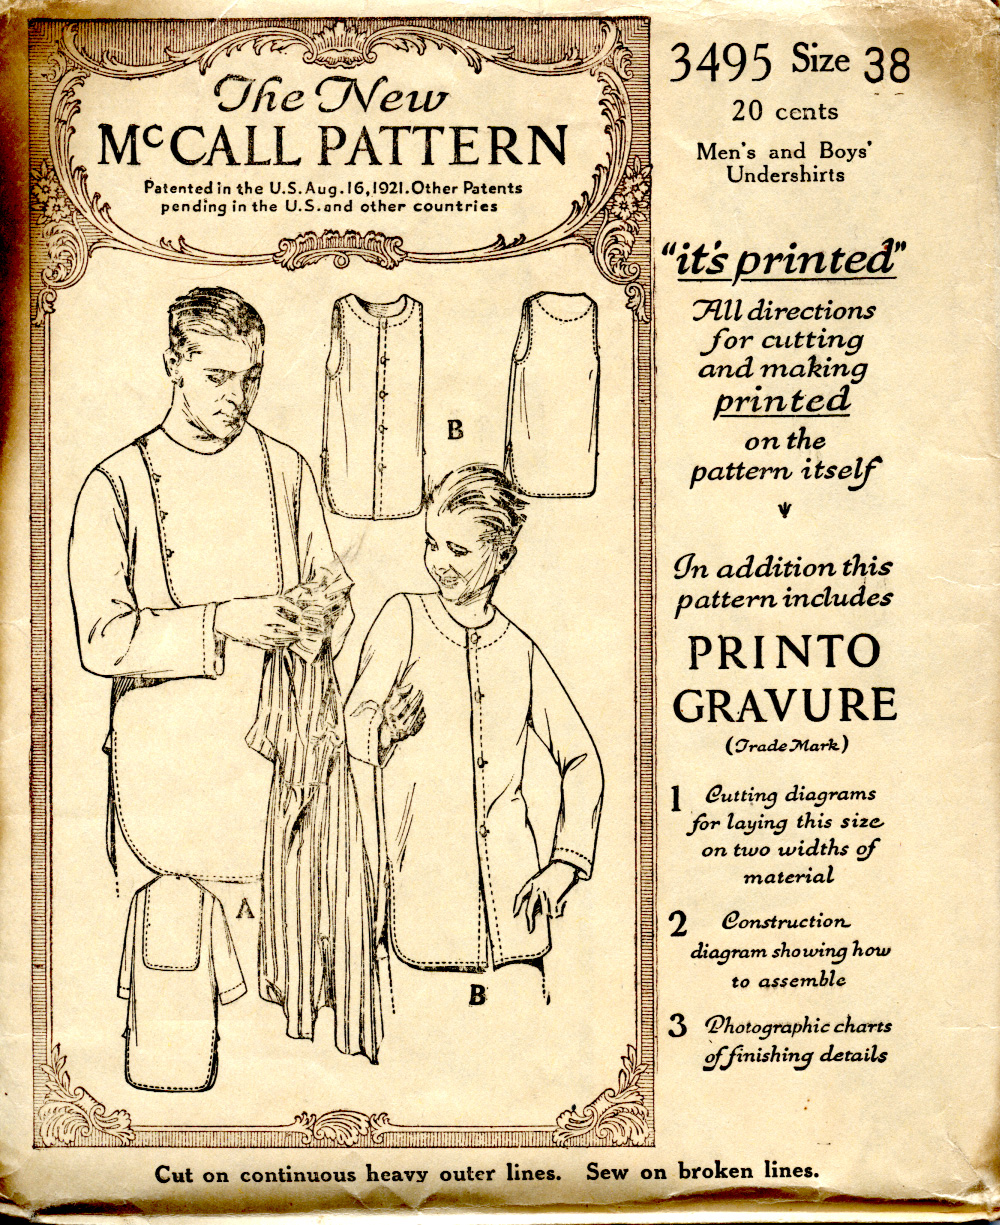 McCall 3495 - Men's and Boys' Undershirts